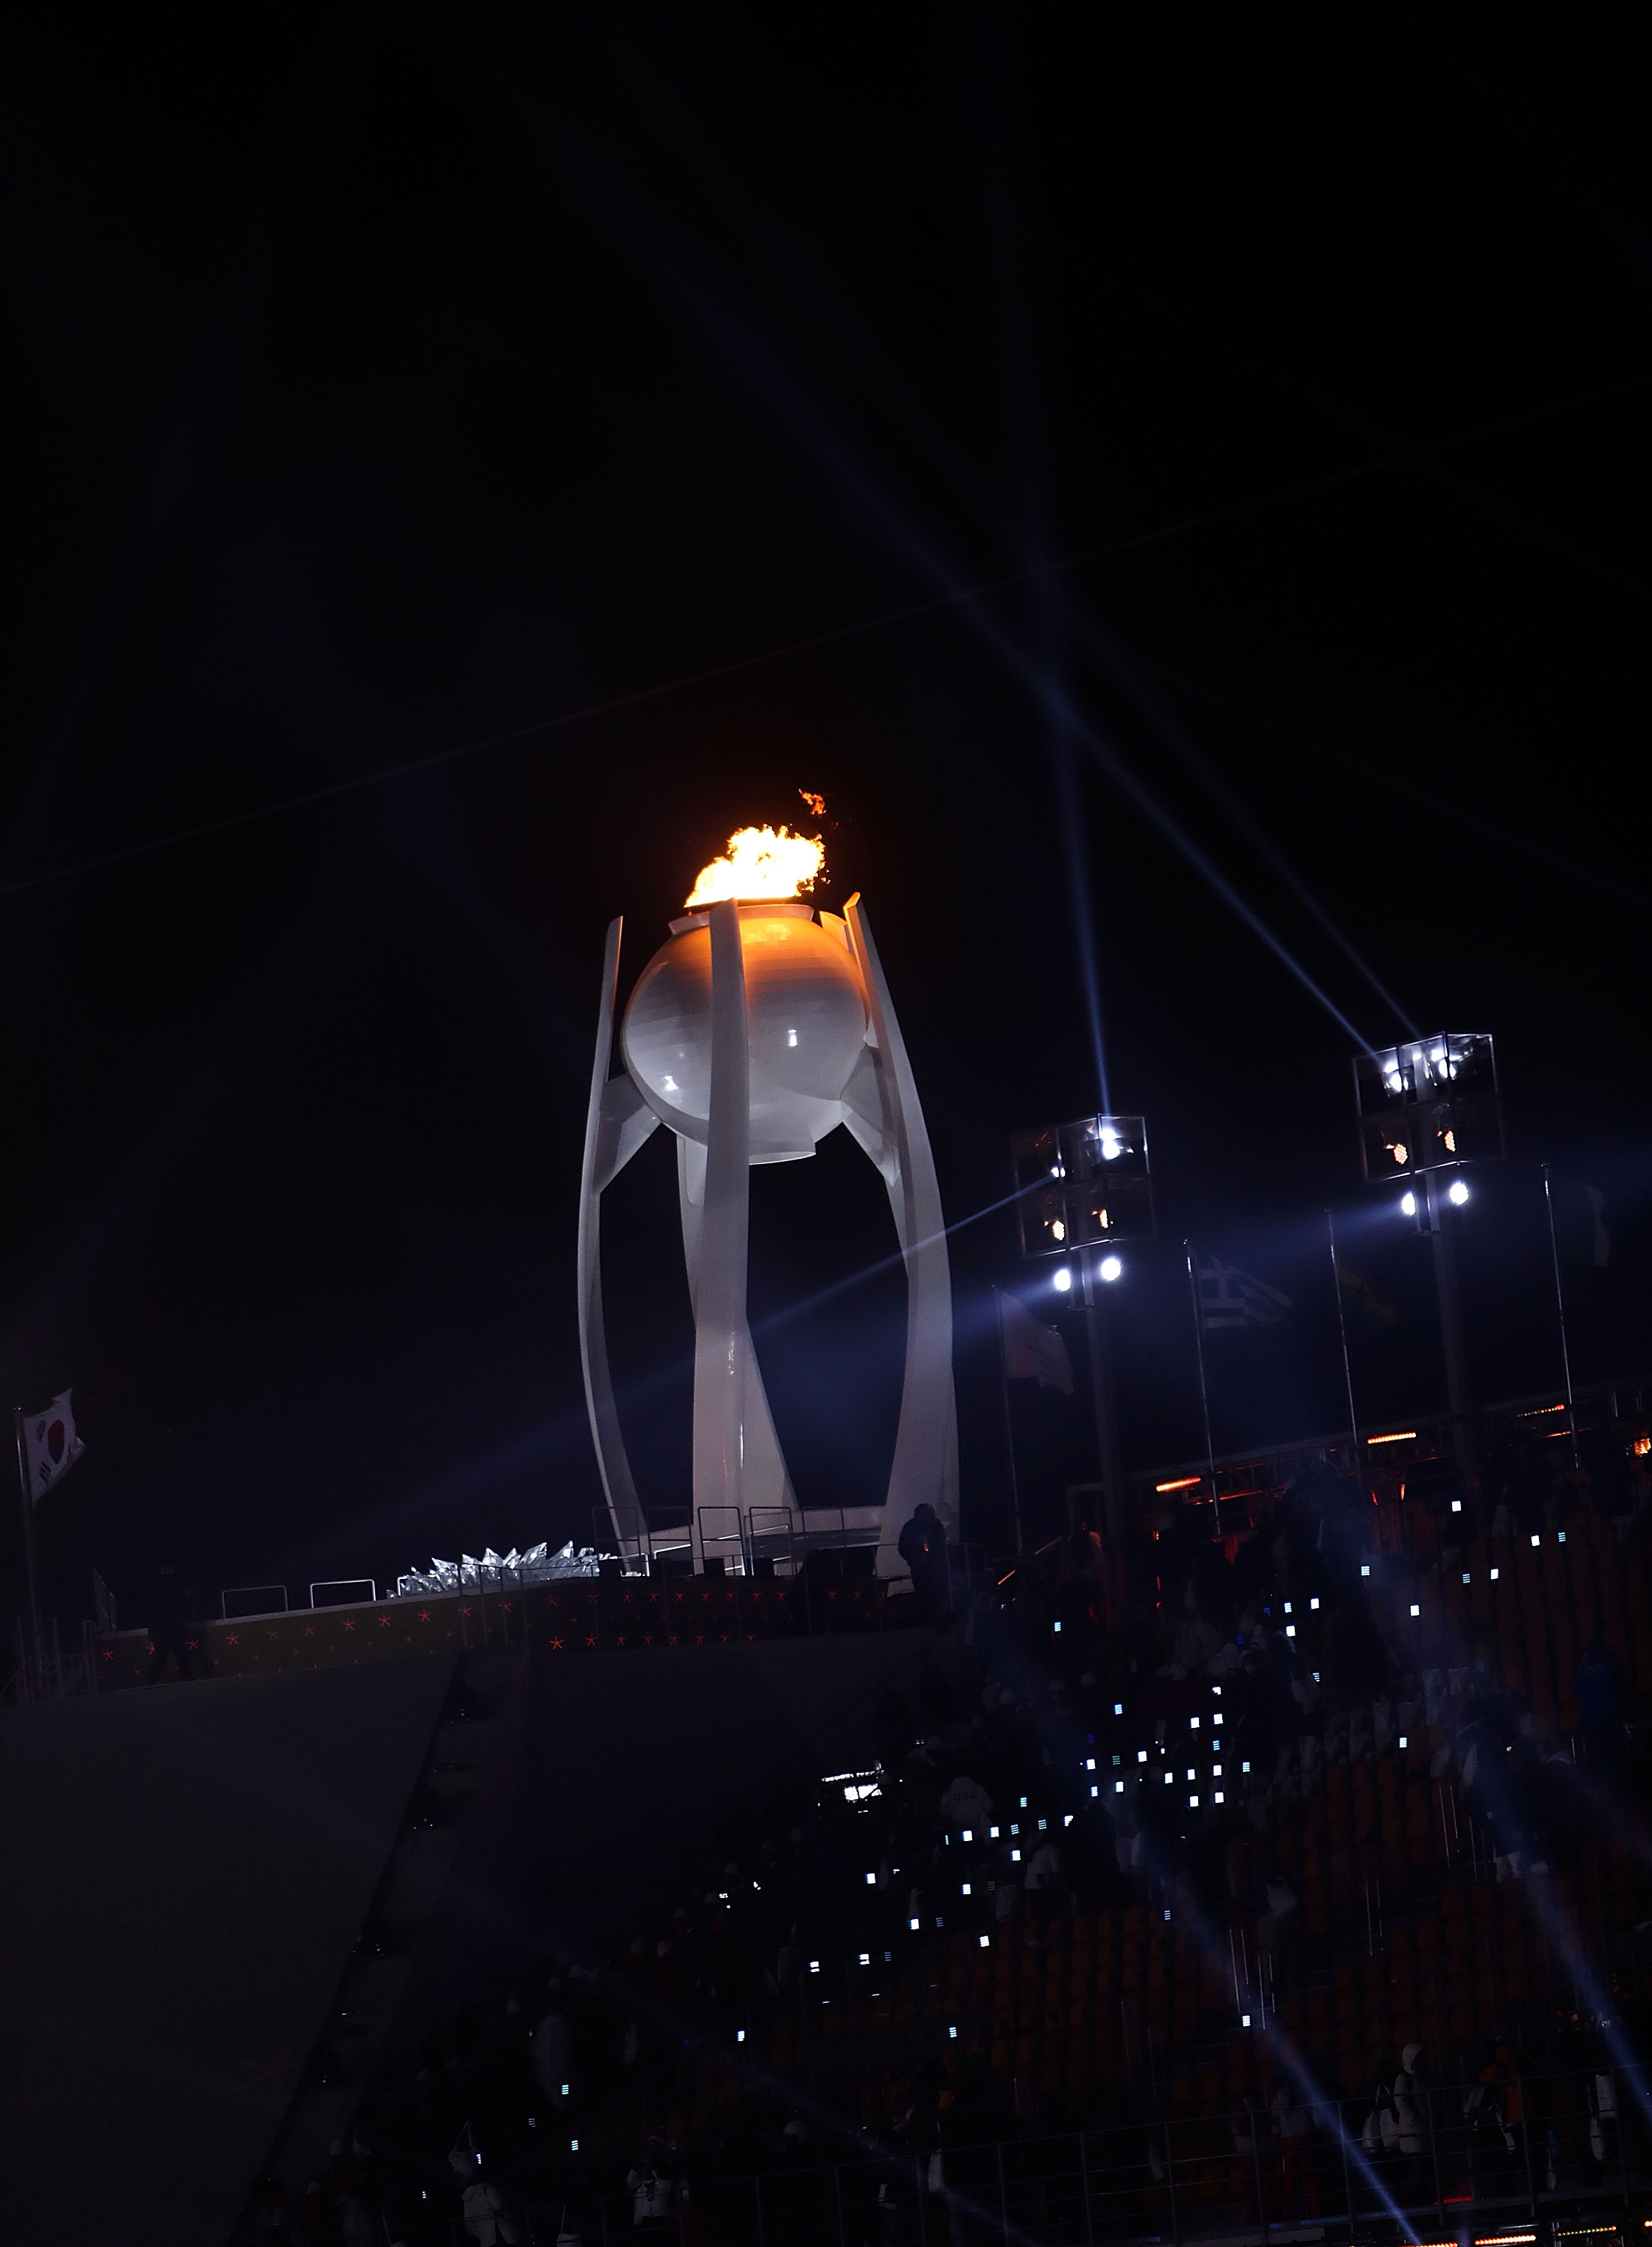 PYEONGCHANG-GUN, SOUTH KOREA - FEBRUARY 09: Olympic Cauldron is lit during the Opening Ceremony of the PyeongChang 2018 Winter Olympic Games at PyeongChang Olympic Stadium on February 9, 2018 in Pyeongchang-gun, South Korea.   fee liable image, copyright © ATP  Amin JAMALI  XXIII. OLYMPIC WINTER GAMES PYEONGCHANG 2018: OPENING CEREMONY,  PyeongChang, Korea, Winter Olympics; PyeongChang Olympic Stadium, on 9. February 2018, fee liable image, copyright © ATP / Amin JAMALI  Featuring: Olympic Cauldron Where: Pyeongchang, Gangwon Province, South Korea When: 09 Feb 2018 Credit: ATP/WENN.com  **Not available for publication in Germany or France. No Contact Music.**